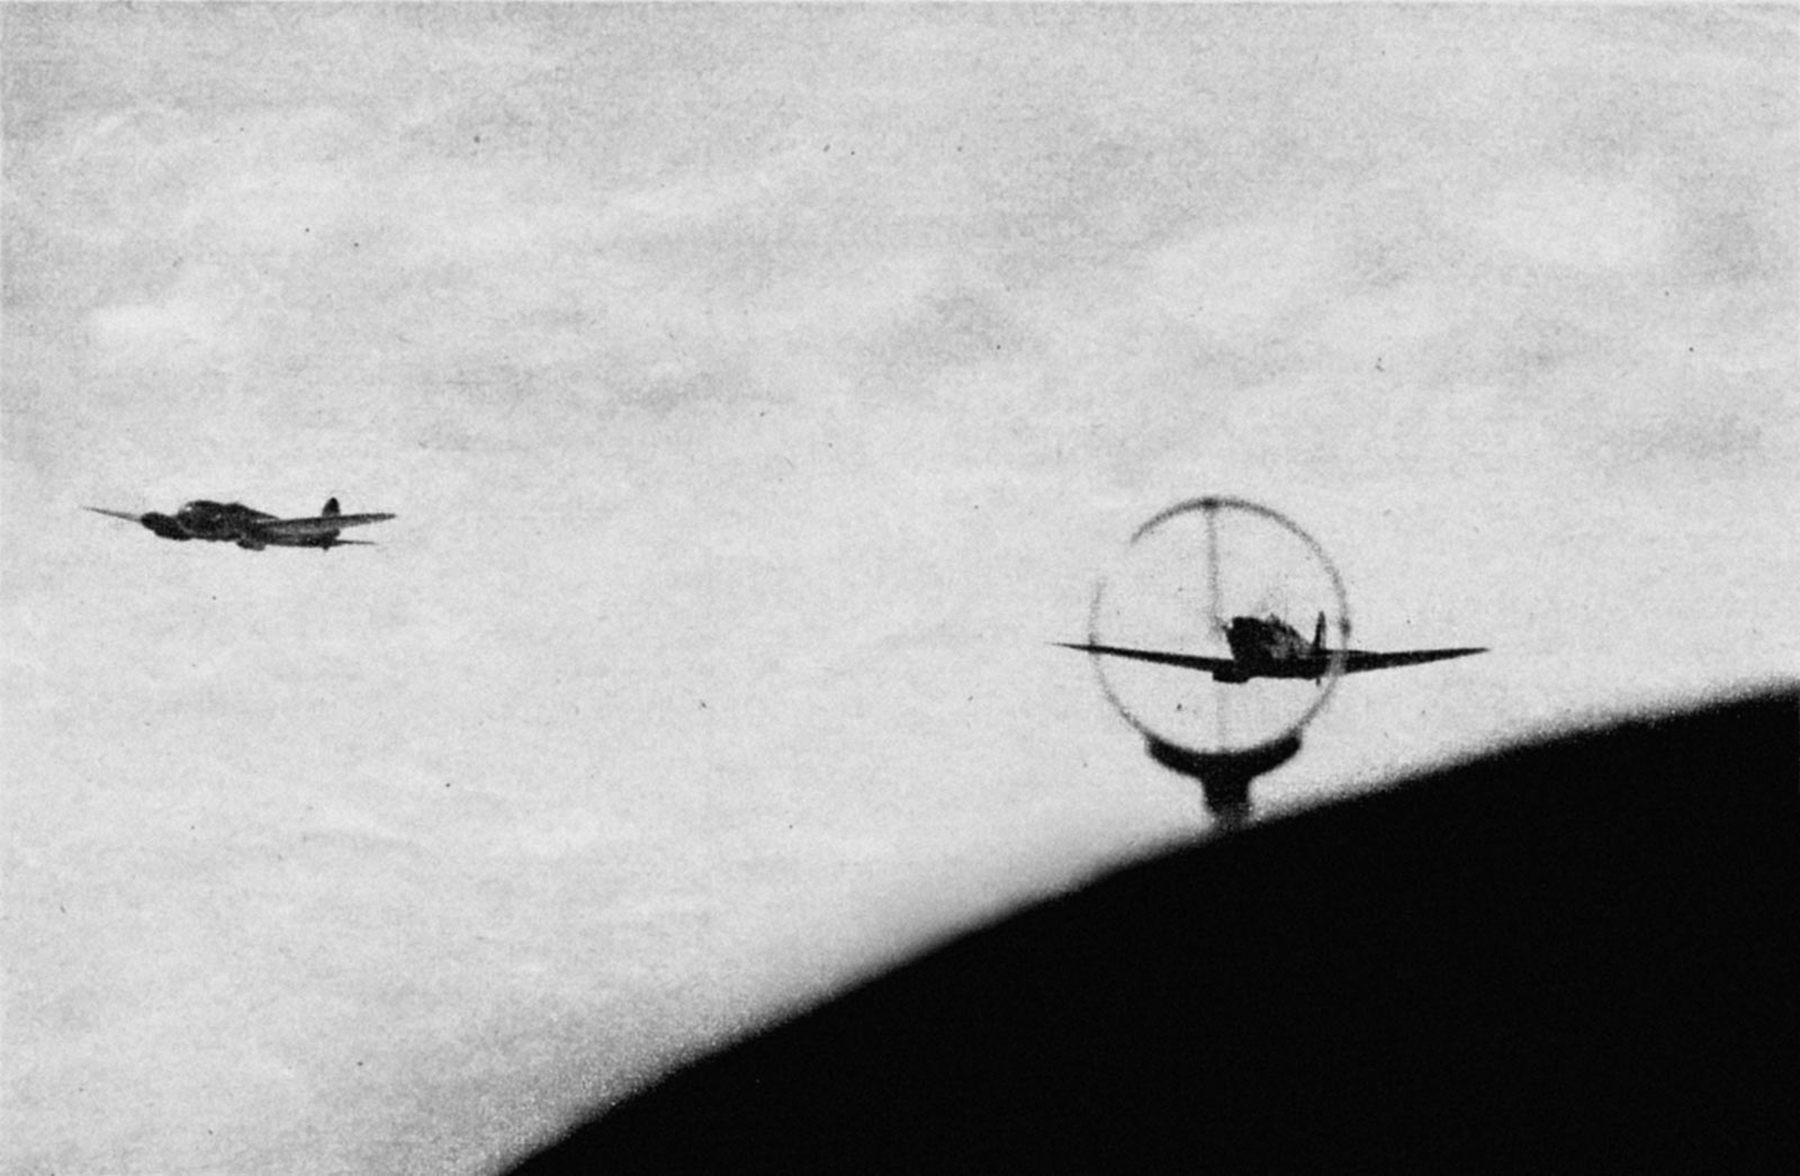 Camera battle footage between Luftwaffe He 111H bombers and a RAF Spitfire off the coast Spring 1941 03